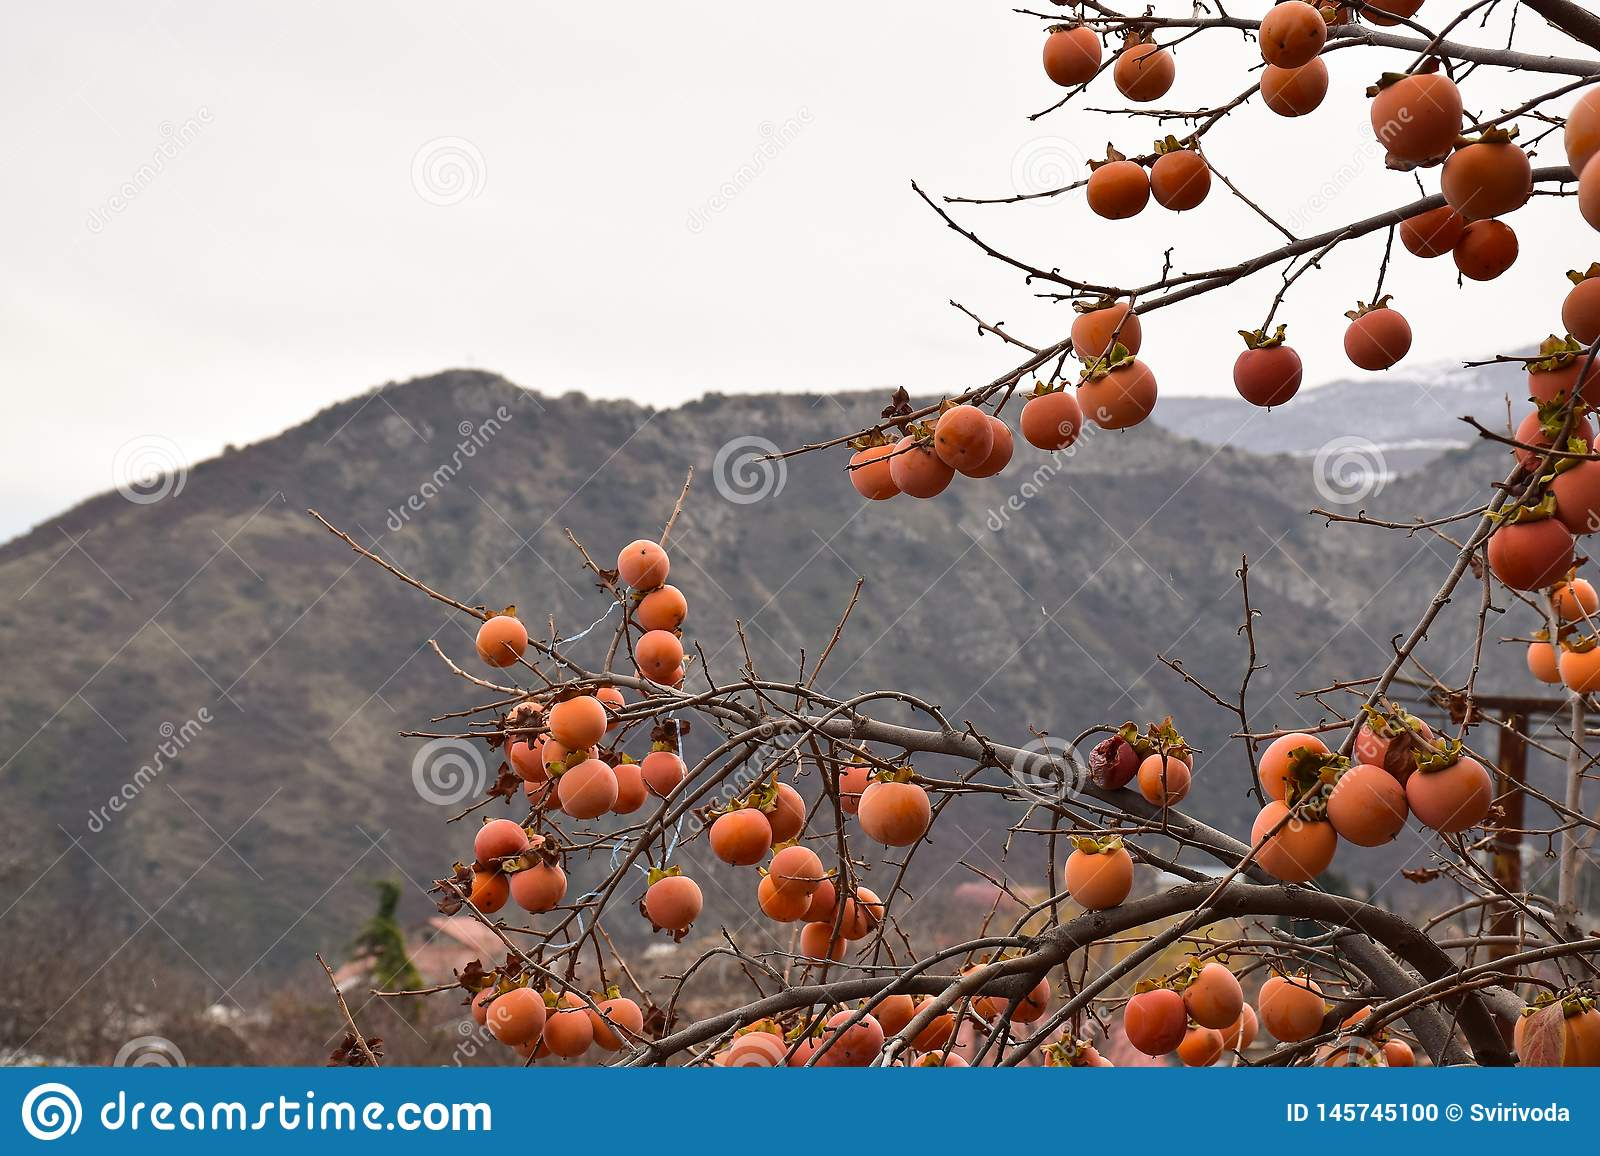 Persimmon tree in the mountains